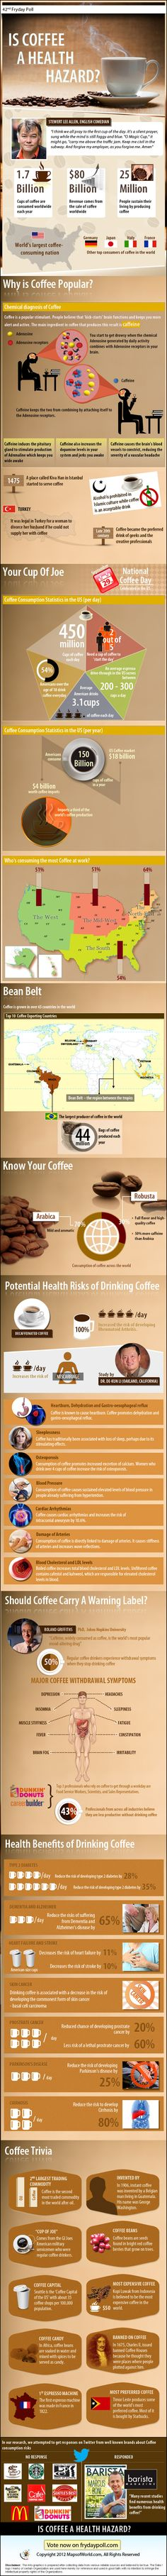 Find In-depth Review And Infographic On The Hazards & Benefits Of Coffee. Find facts and statistics from around the world, learn more about what makes coffee so popular and coffee trivia.